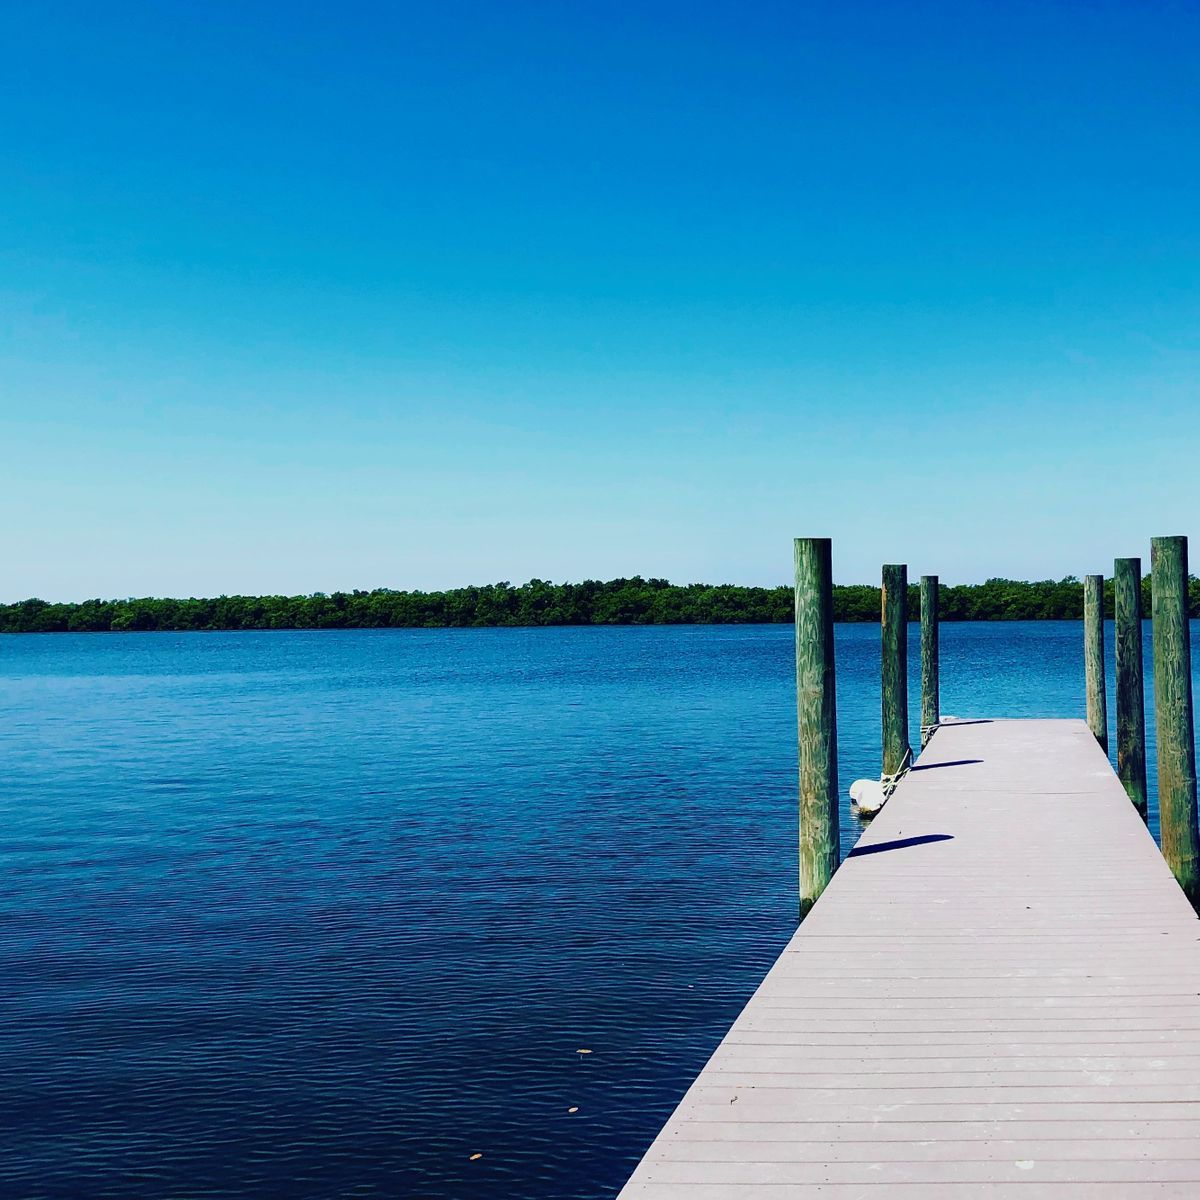 Long dock out over the blue water.